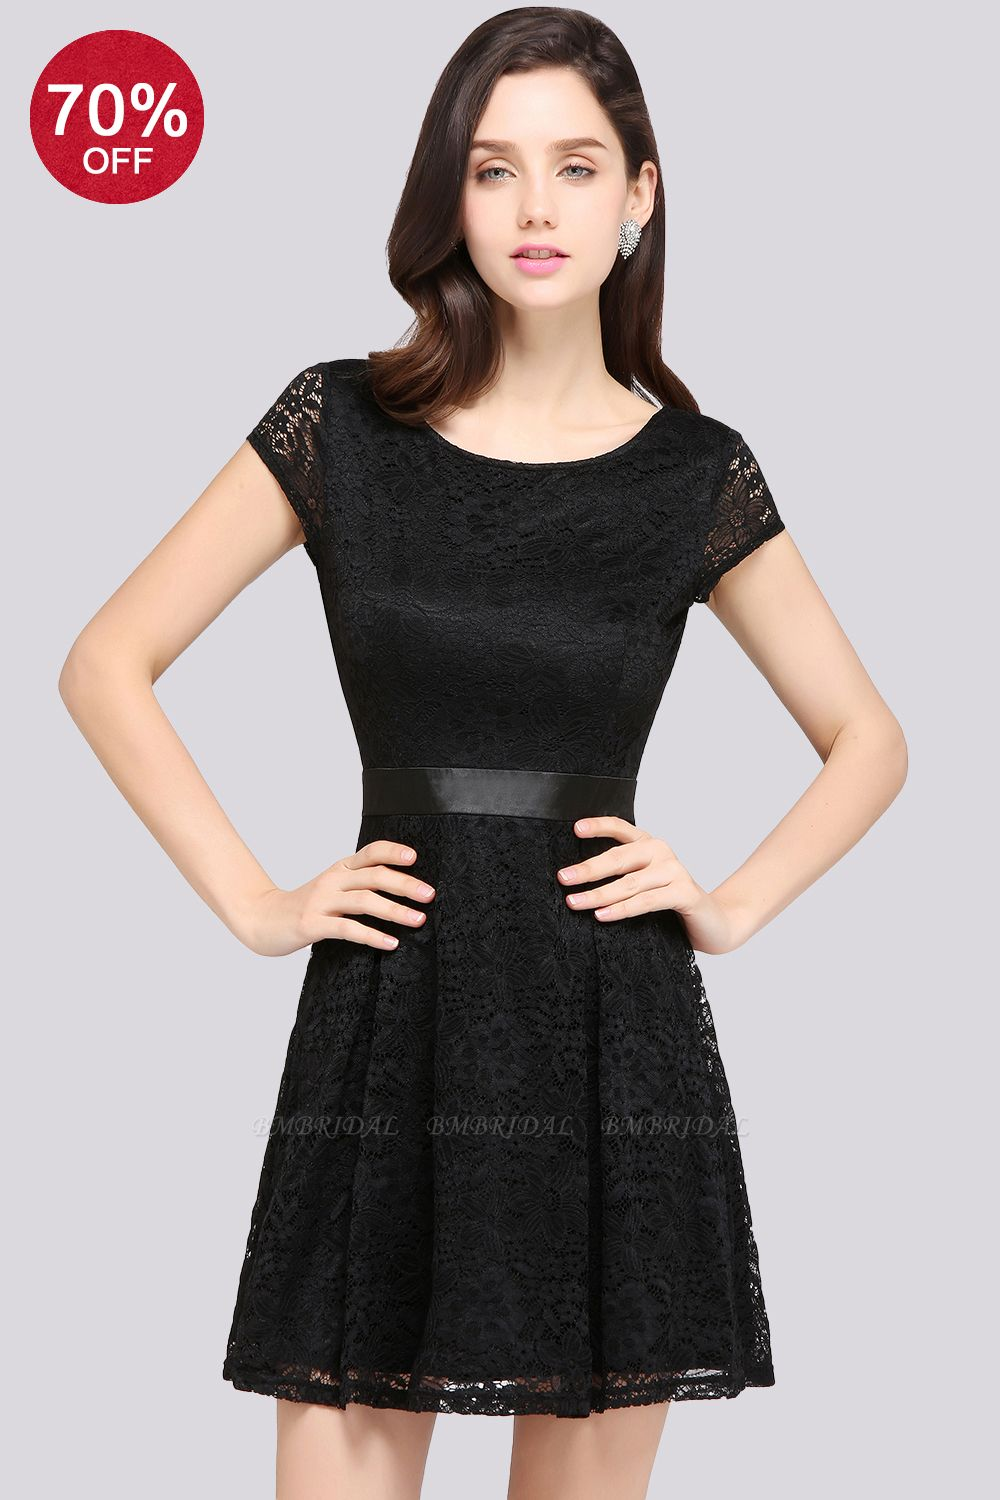 BMbridal Affordable Black Lace Short-Sleeves Junior Bridesmaid Dresses In Stock